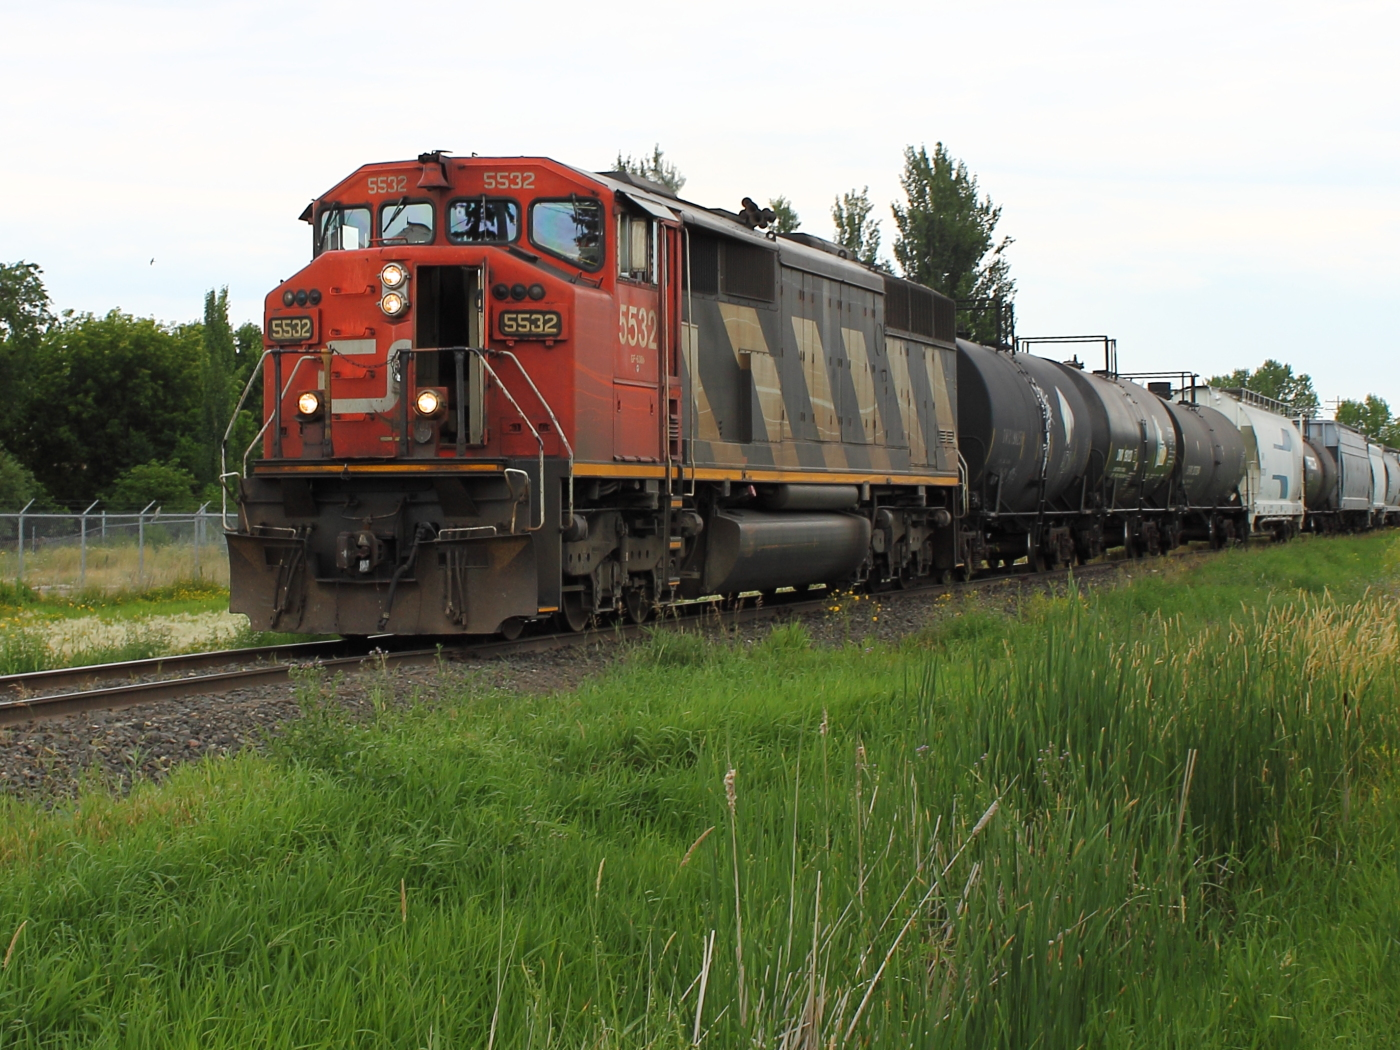 CN 5532 in Winnipeg, MB 2012/07/12